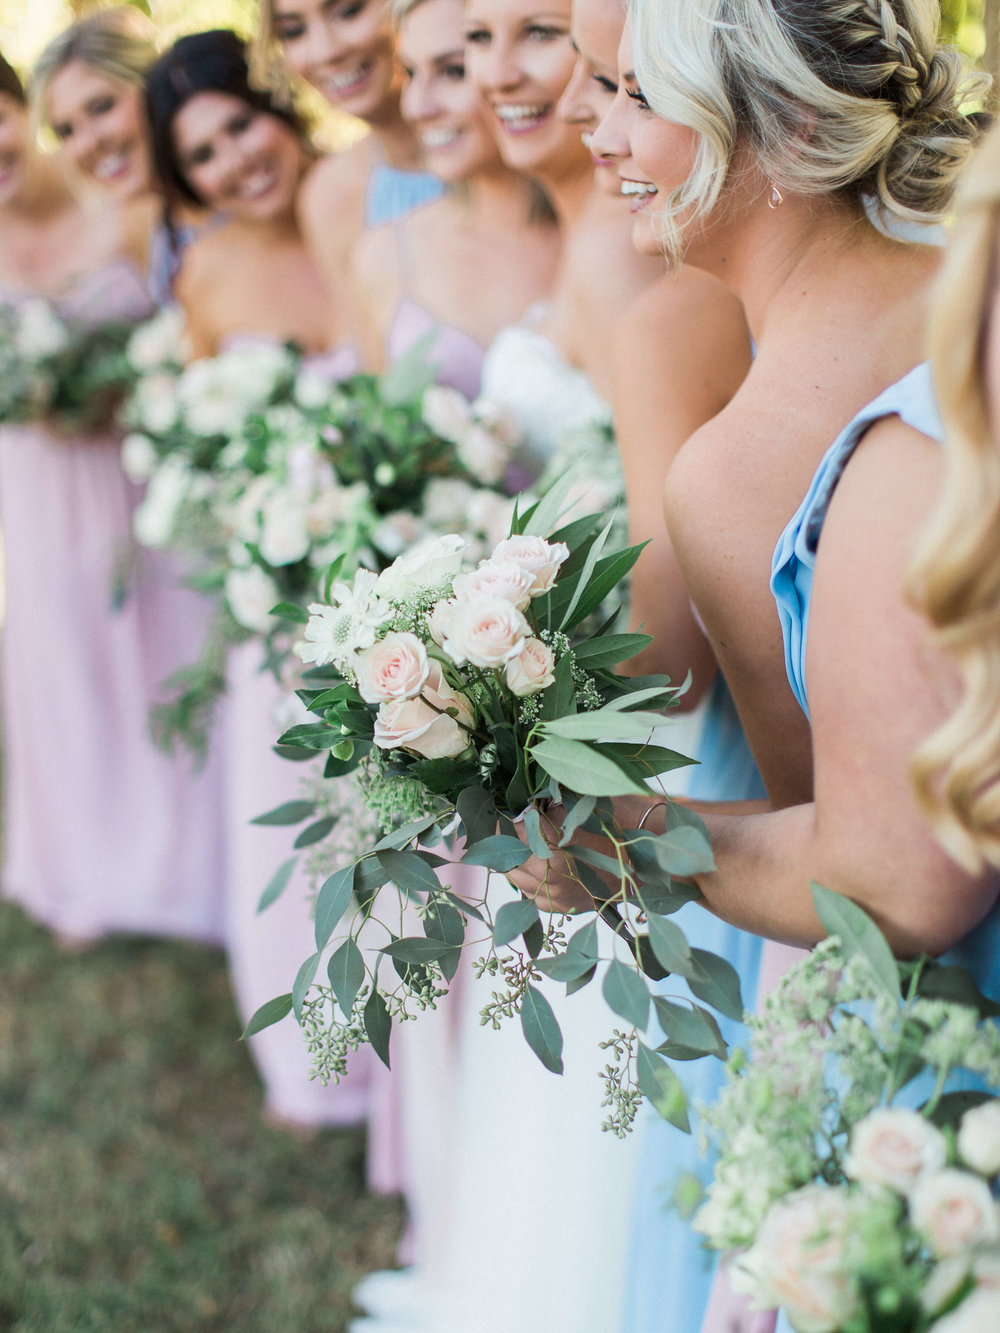 Planning, Coordination & Design - All of your wedding day details handled beautifully with our meticulous planning and full-service coordination packages. Scroll down to see more of our special pricing for clients of Long Hollow Gardens only.↓